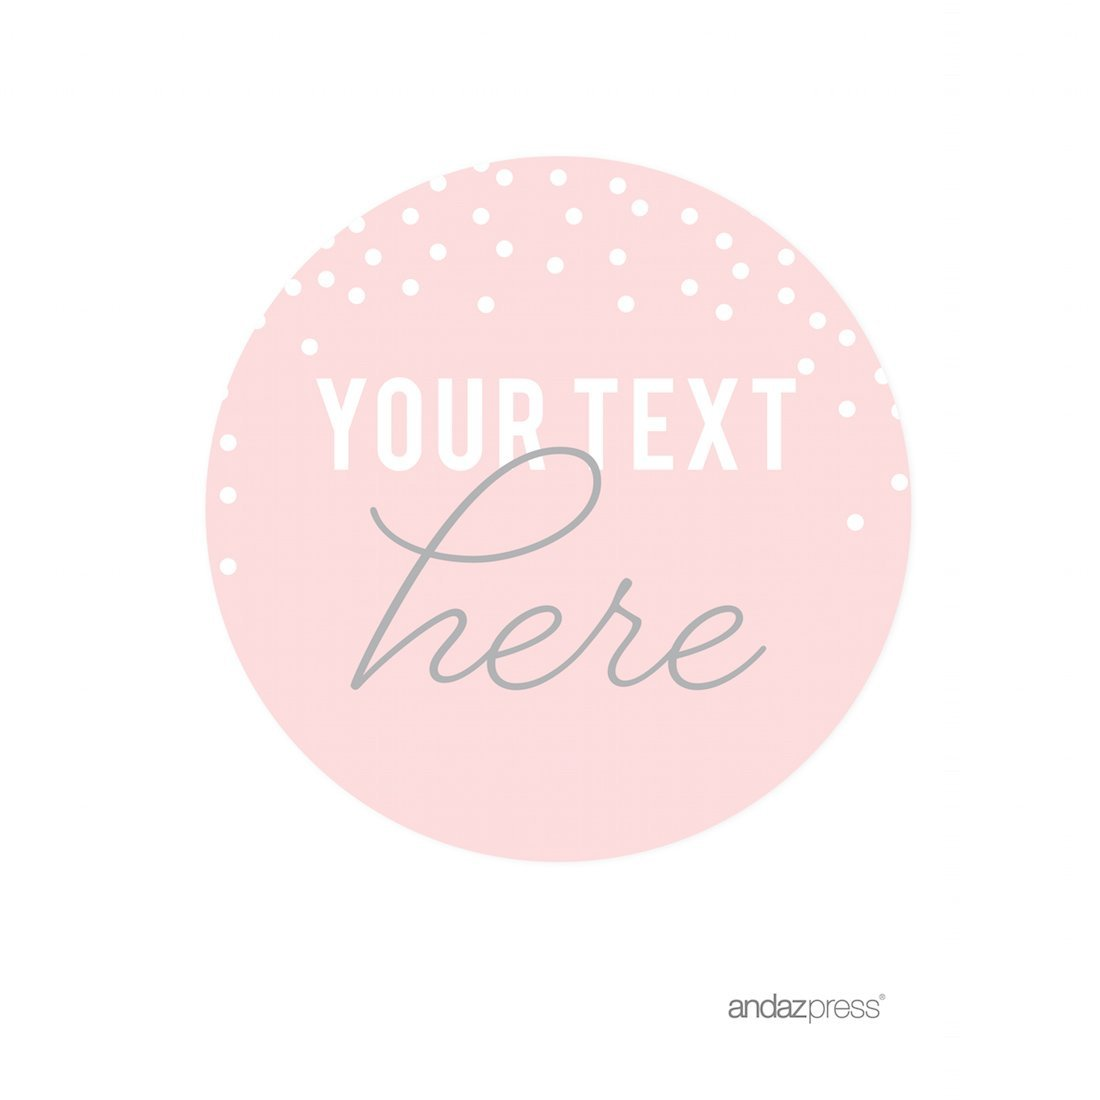 Andaz Press Pink Blush and Gray Pop Fizz Clink Wedding Collection, Personalized Round Circle Label Stickers, Custom Your Text Here, 40-Pack